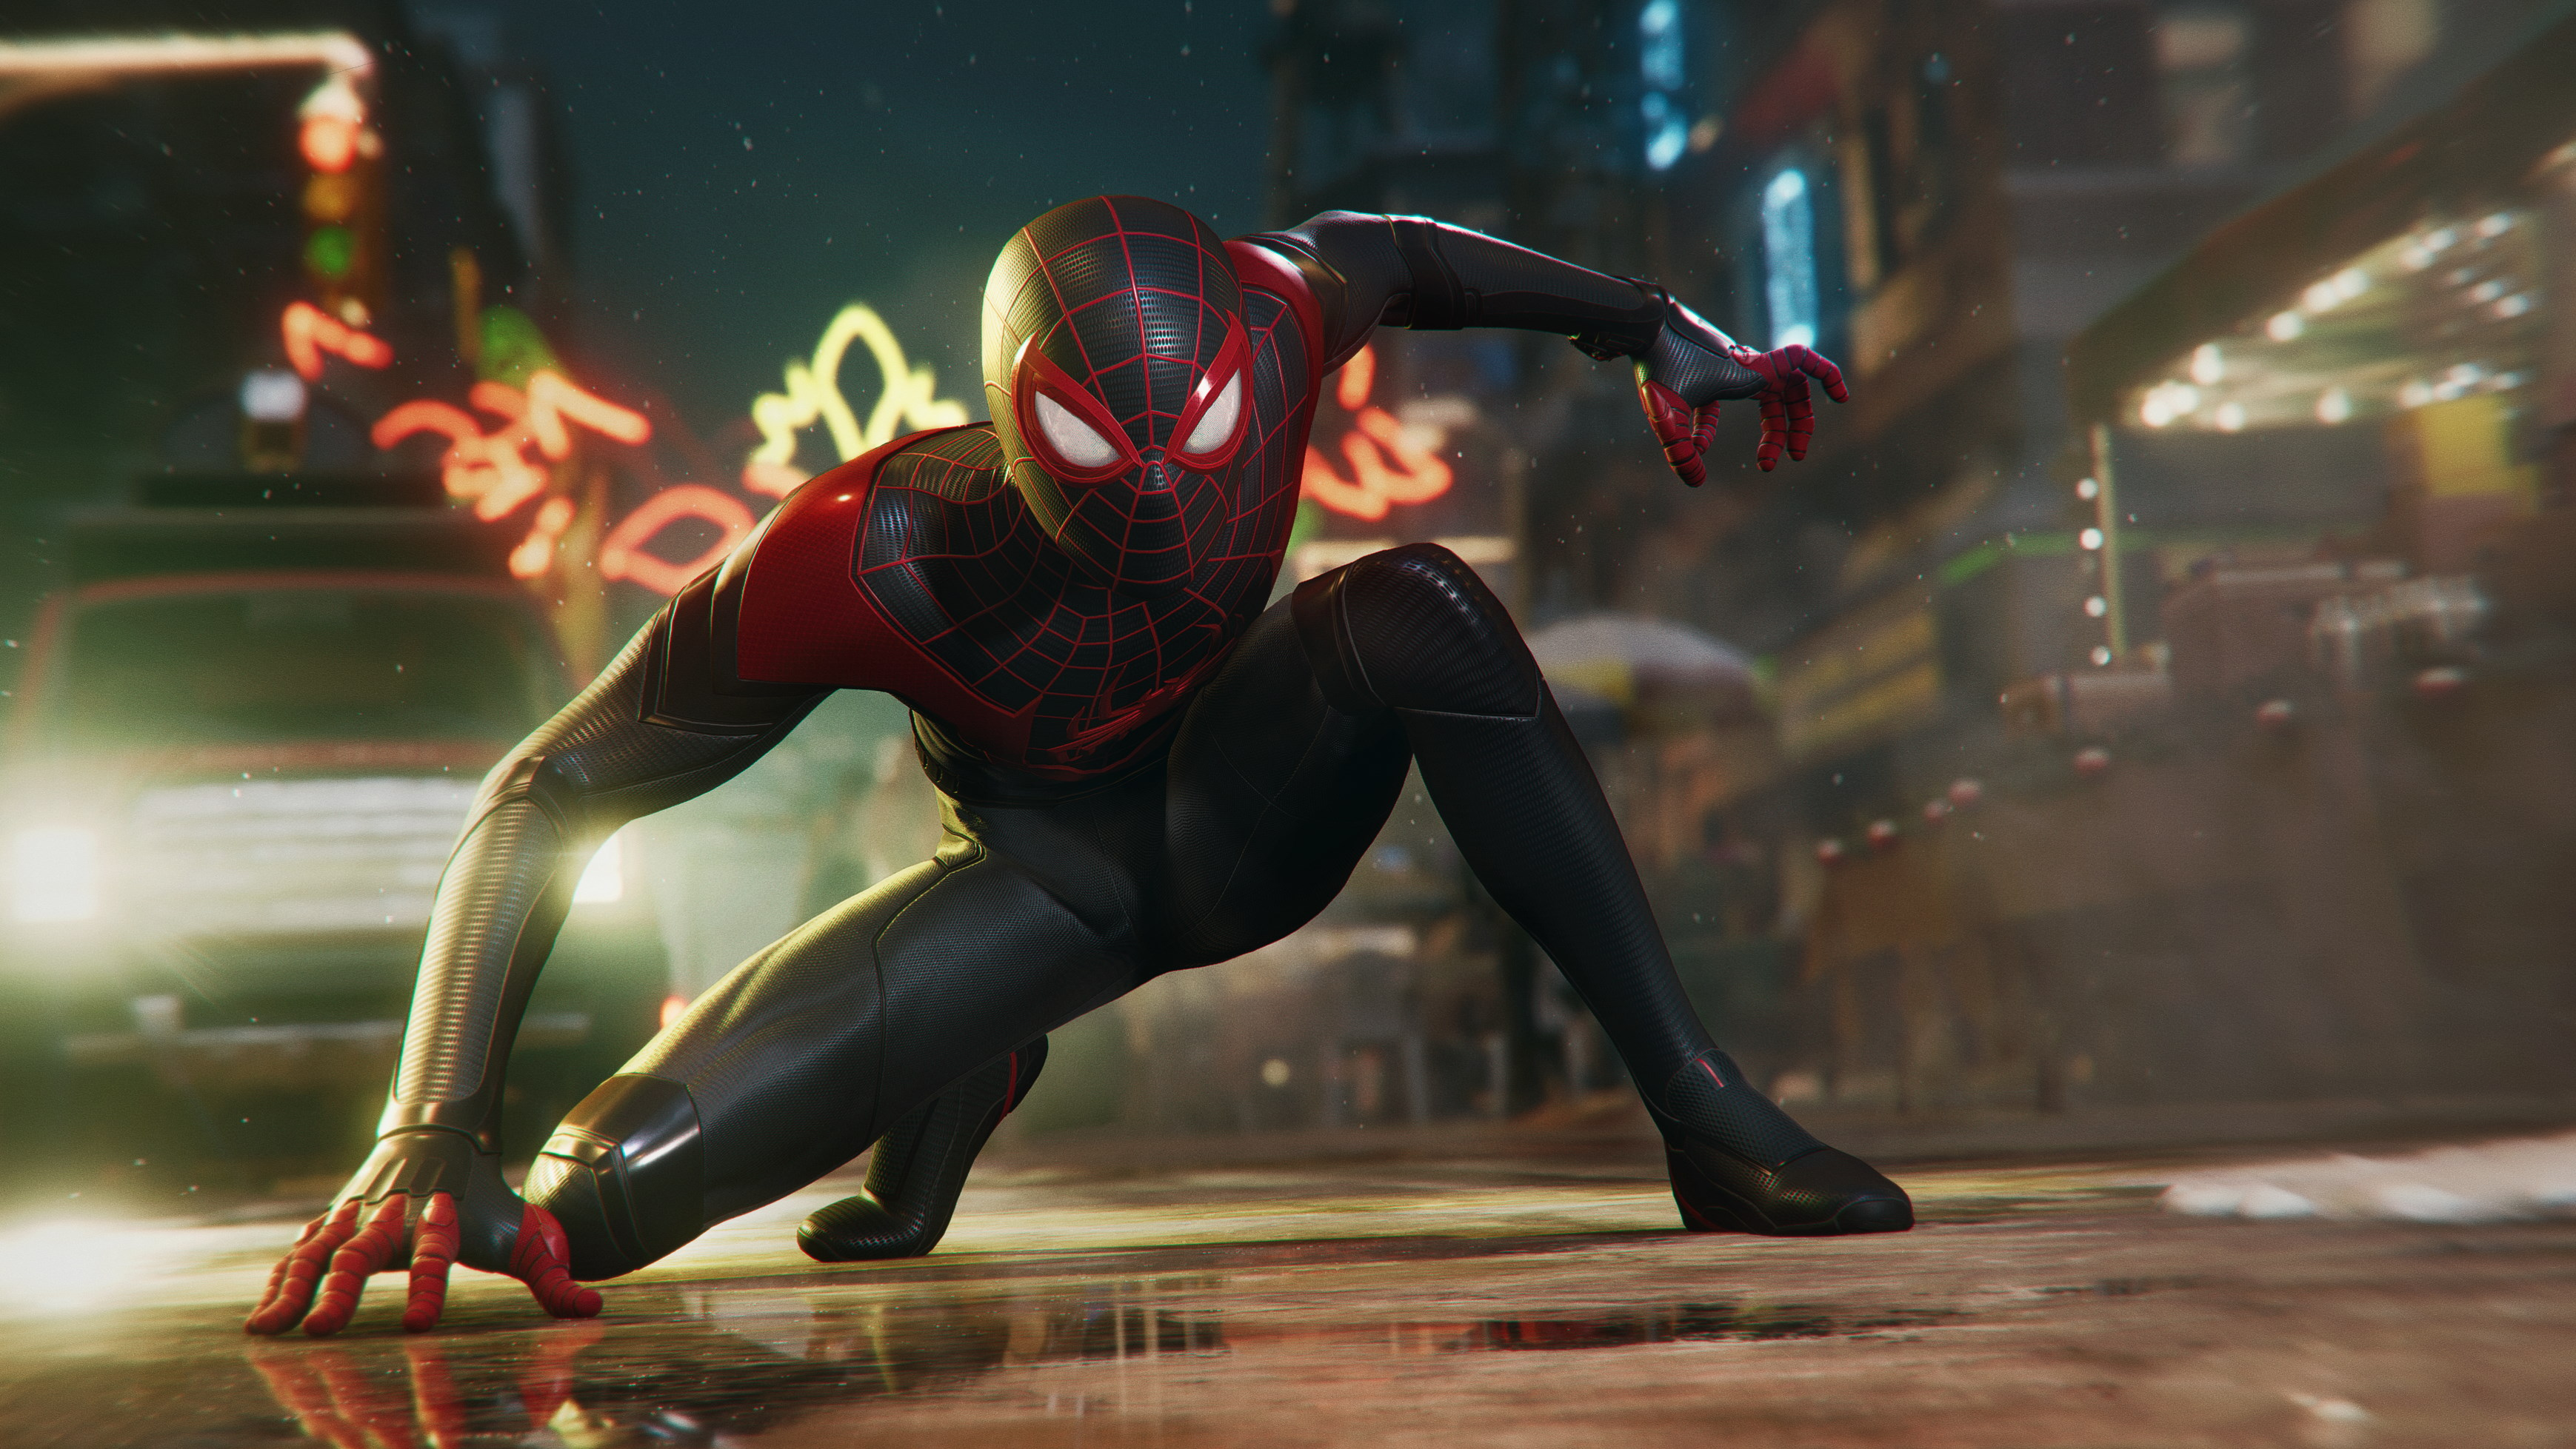 Marvel's Spider-Man: Miles Morales packs a punch on PS5.